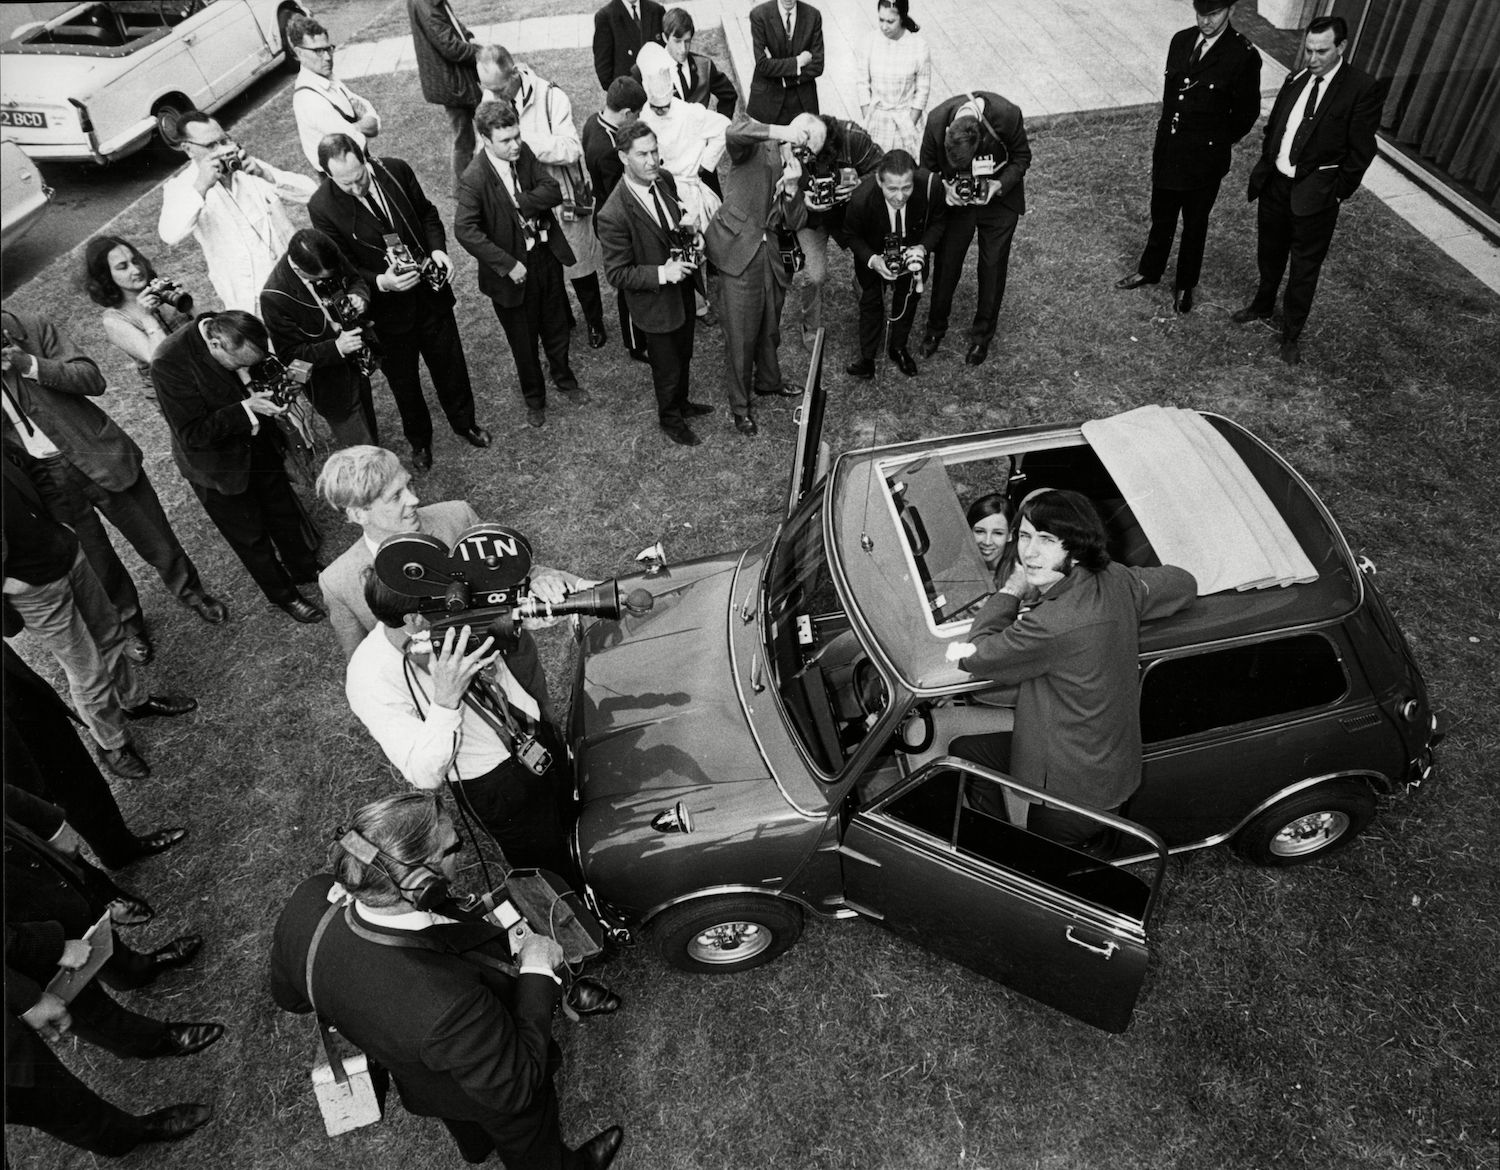 Mike Nesmith Of Pop Group The Monkees Here With His Wife Phyllis Nesmith And And His Mini Car Surrounded By Press 1967. 3 Jul 1967